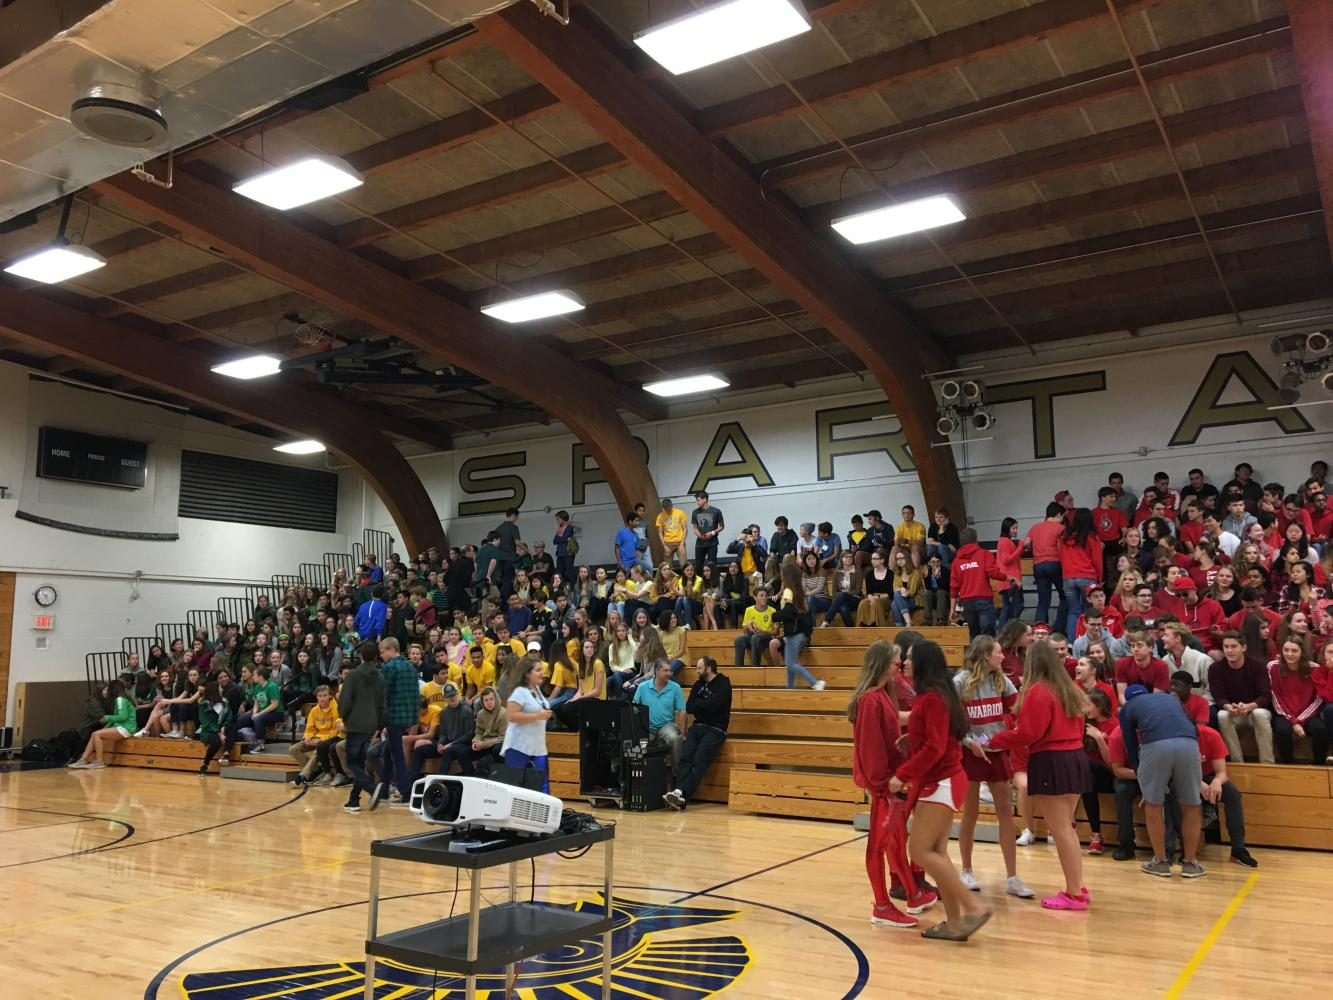 Students+arrange+themselves+by+grade+%28and+class+color%29+for+the+kick-off+assembly.+%22It+was+good+to+show+school+spirit+for+the+upcoming+homecoming+week.+It+was+enjoyable+because+it+was+quick+and+focused+on+just+our+school%2C%22+sophomore+Fremont+Forsberg+said.+